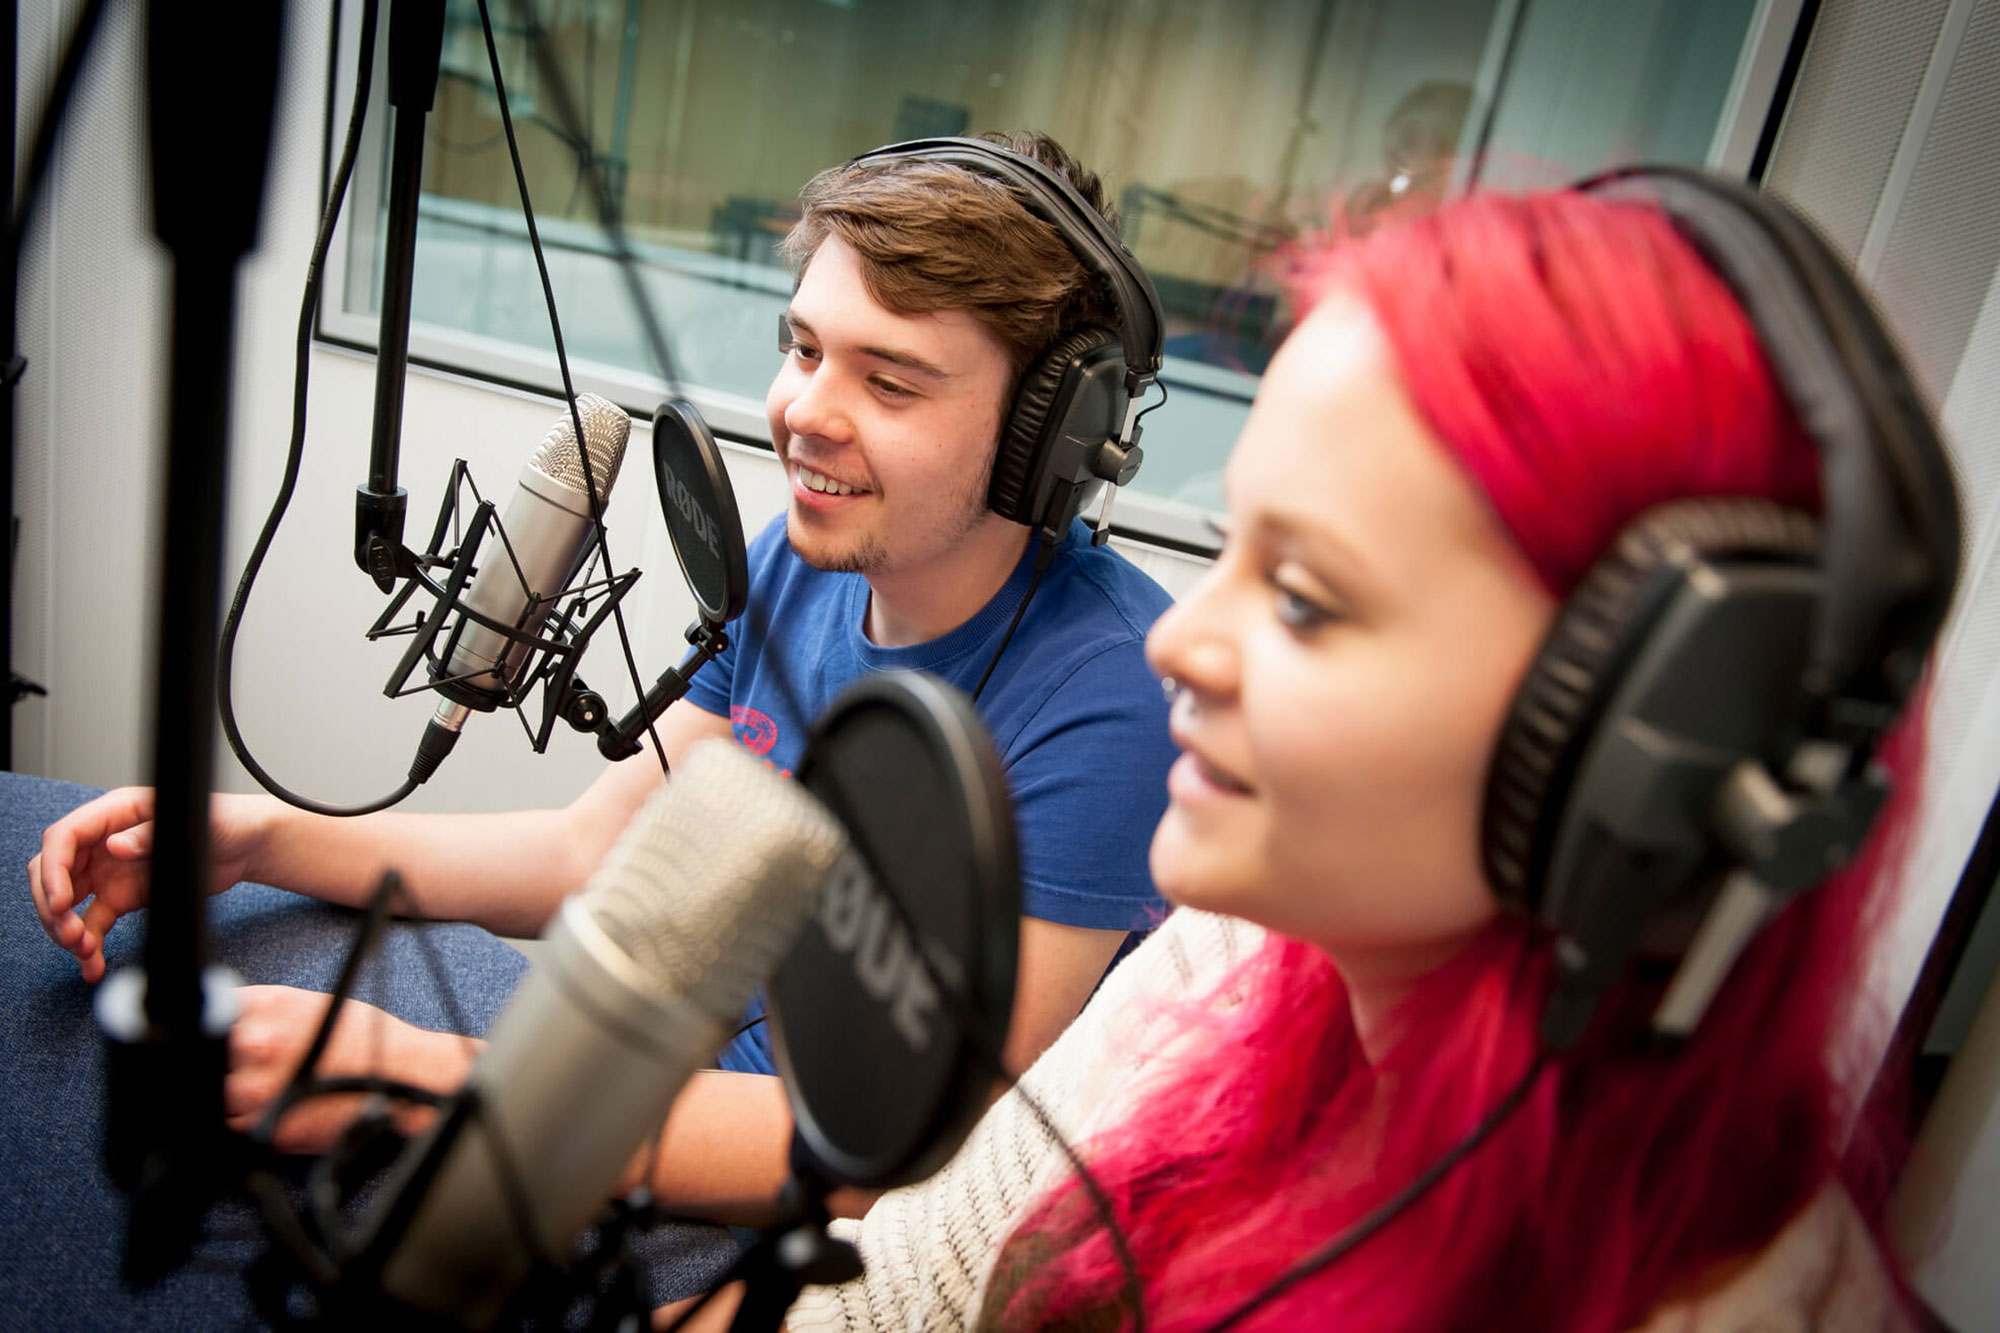 Media Production students work in the Recording Studio